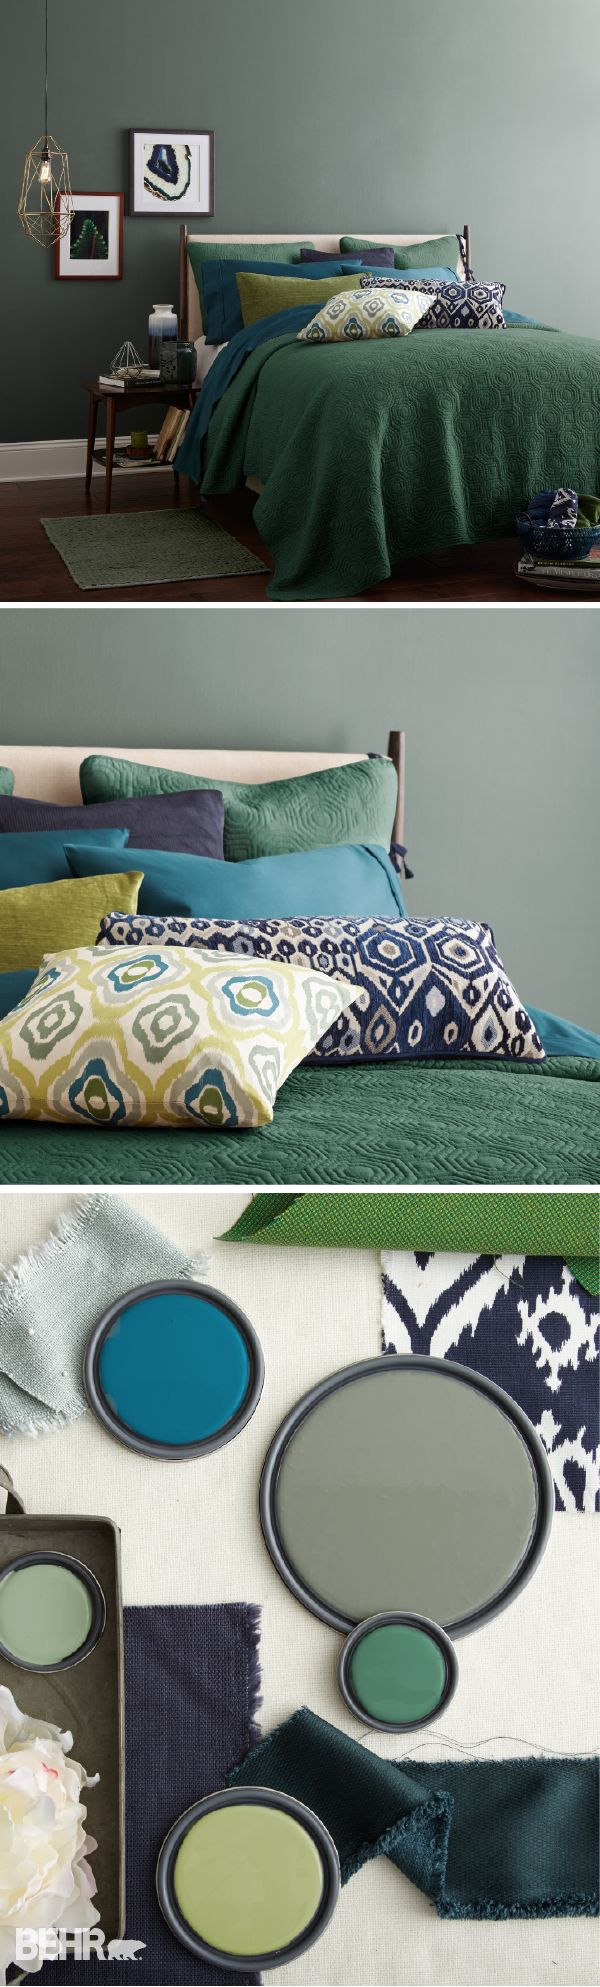 800 x 800 183 72 kb 183 jpeg bedrooms with gold curtains - Best 25 Gray Green Paints Ideas On Pinterest Gray Green Bedrooms Gray Green And Green Paint Colors